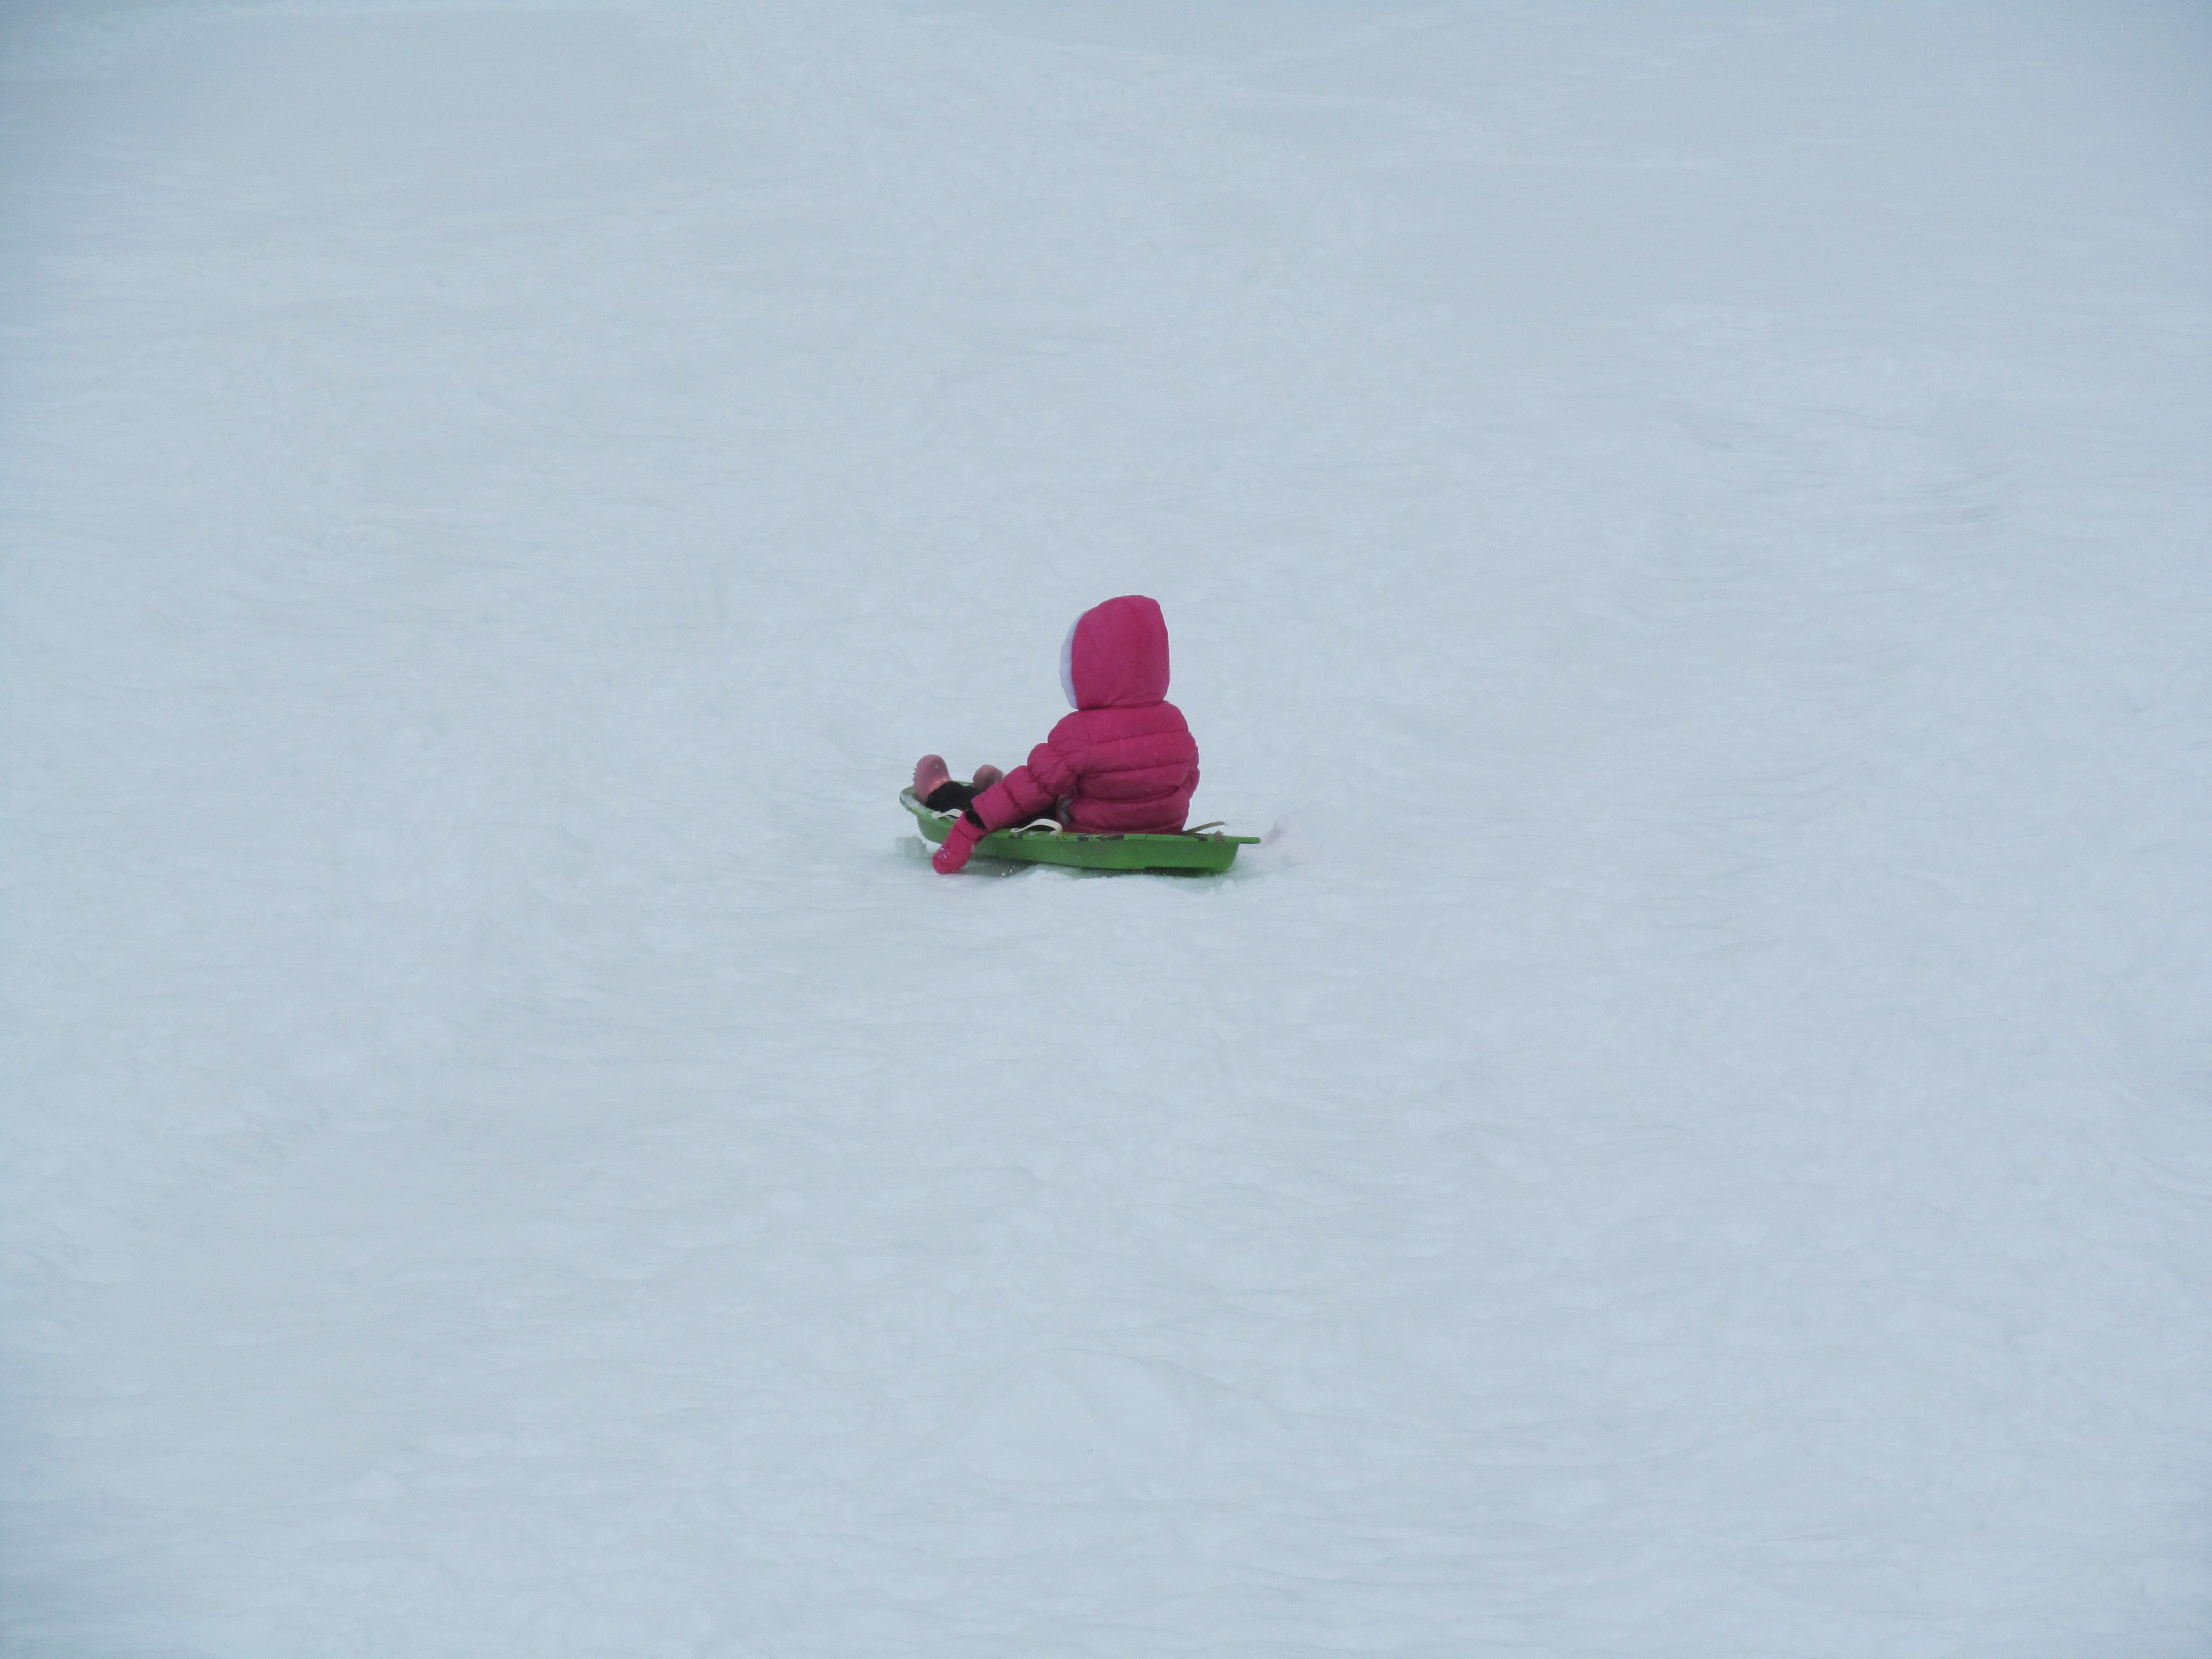 Granddaughter in a Sea of snow